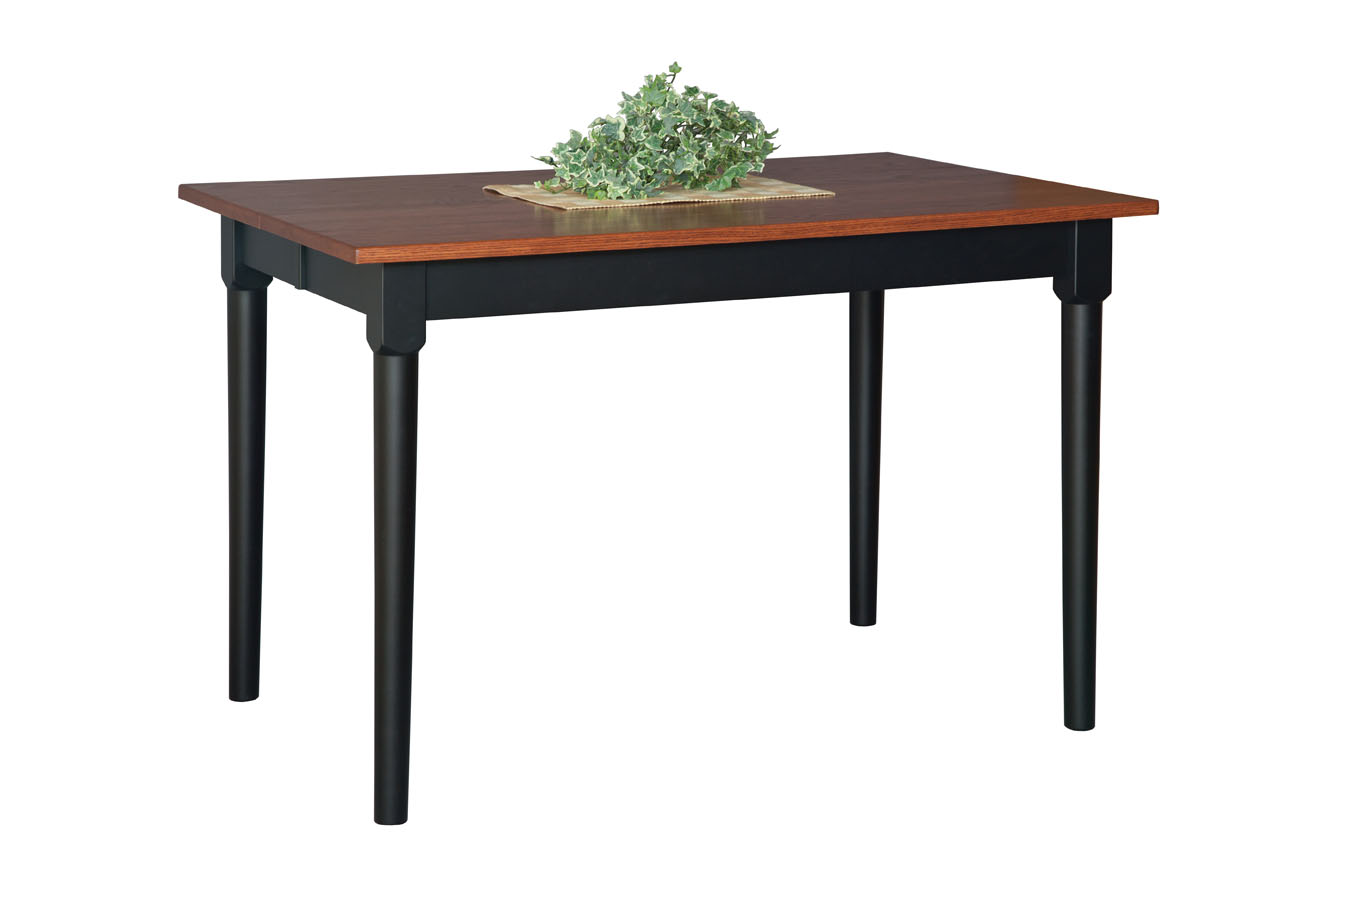 54 x 36 table amish furniture connections amish